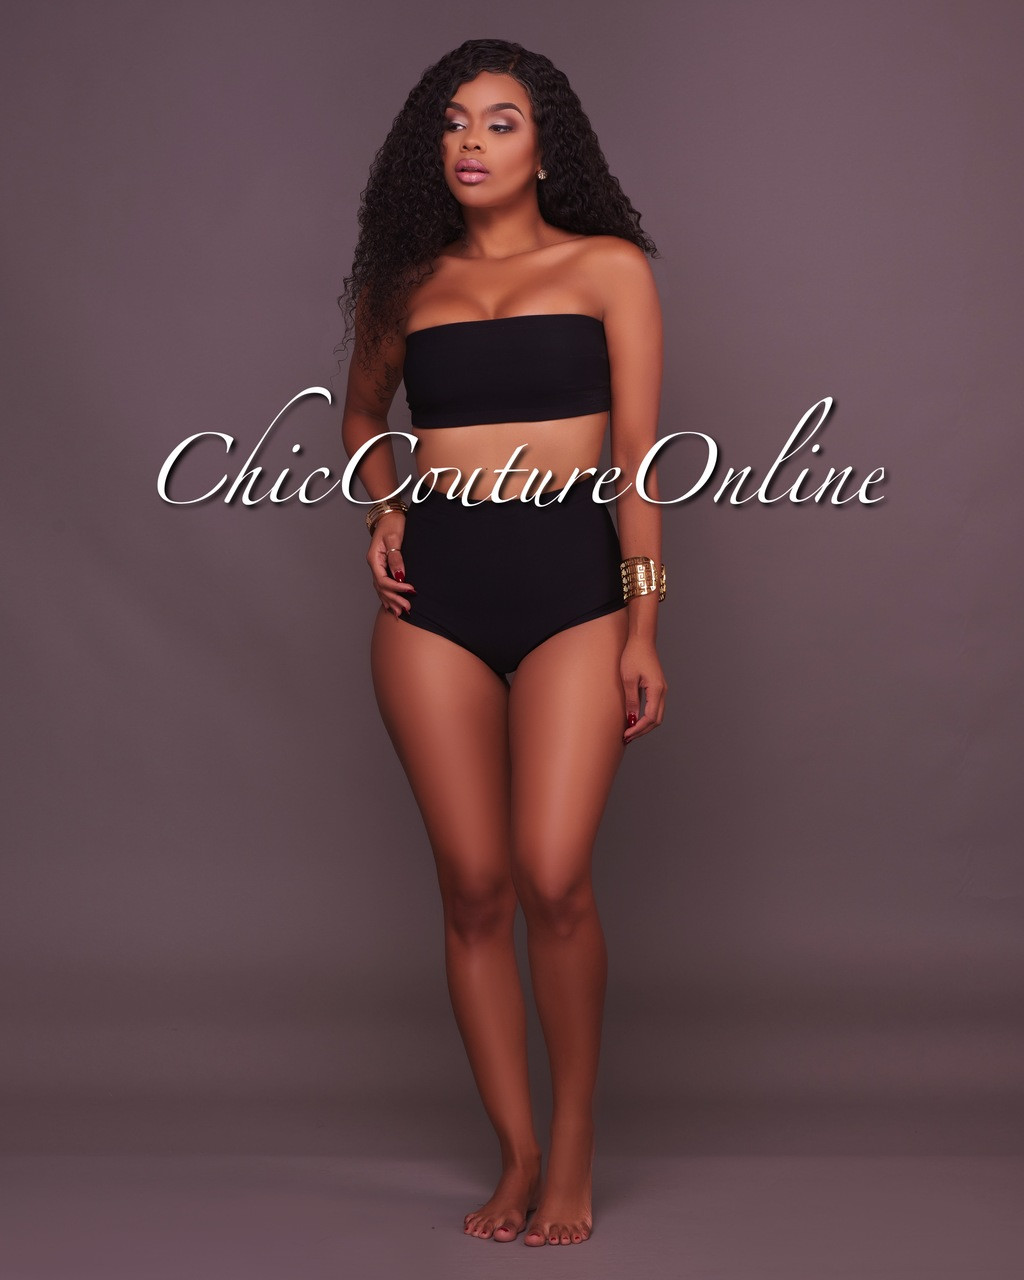 b64d822387036 Abbee Black Two Piece High Waist Swimsuit. Price   60.00. Image 1. Larger    More Photos